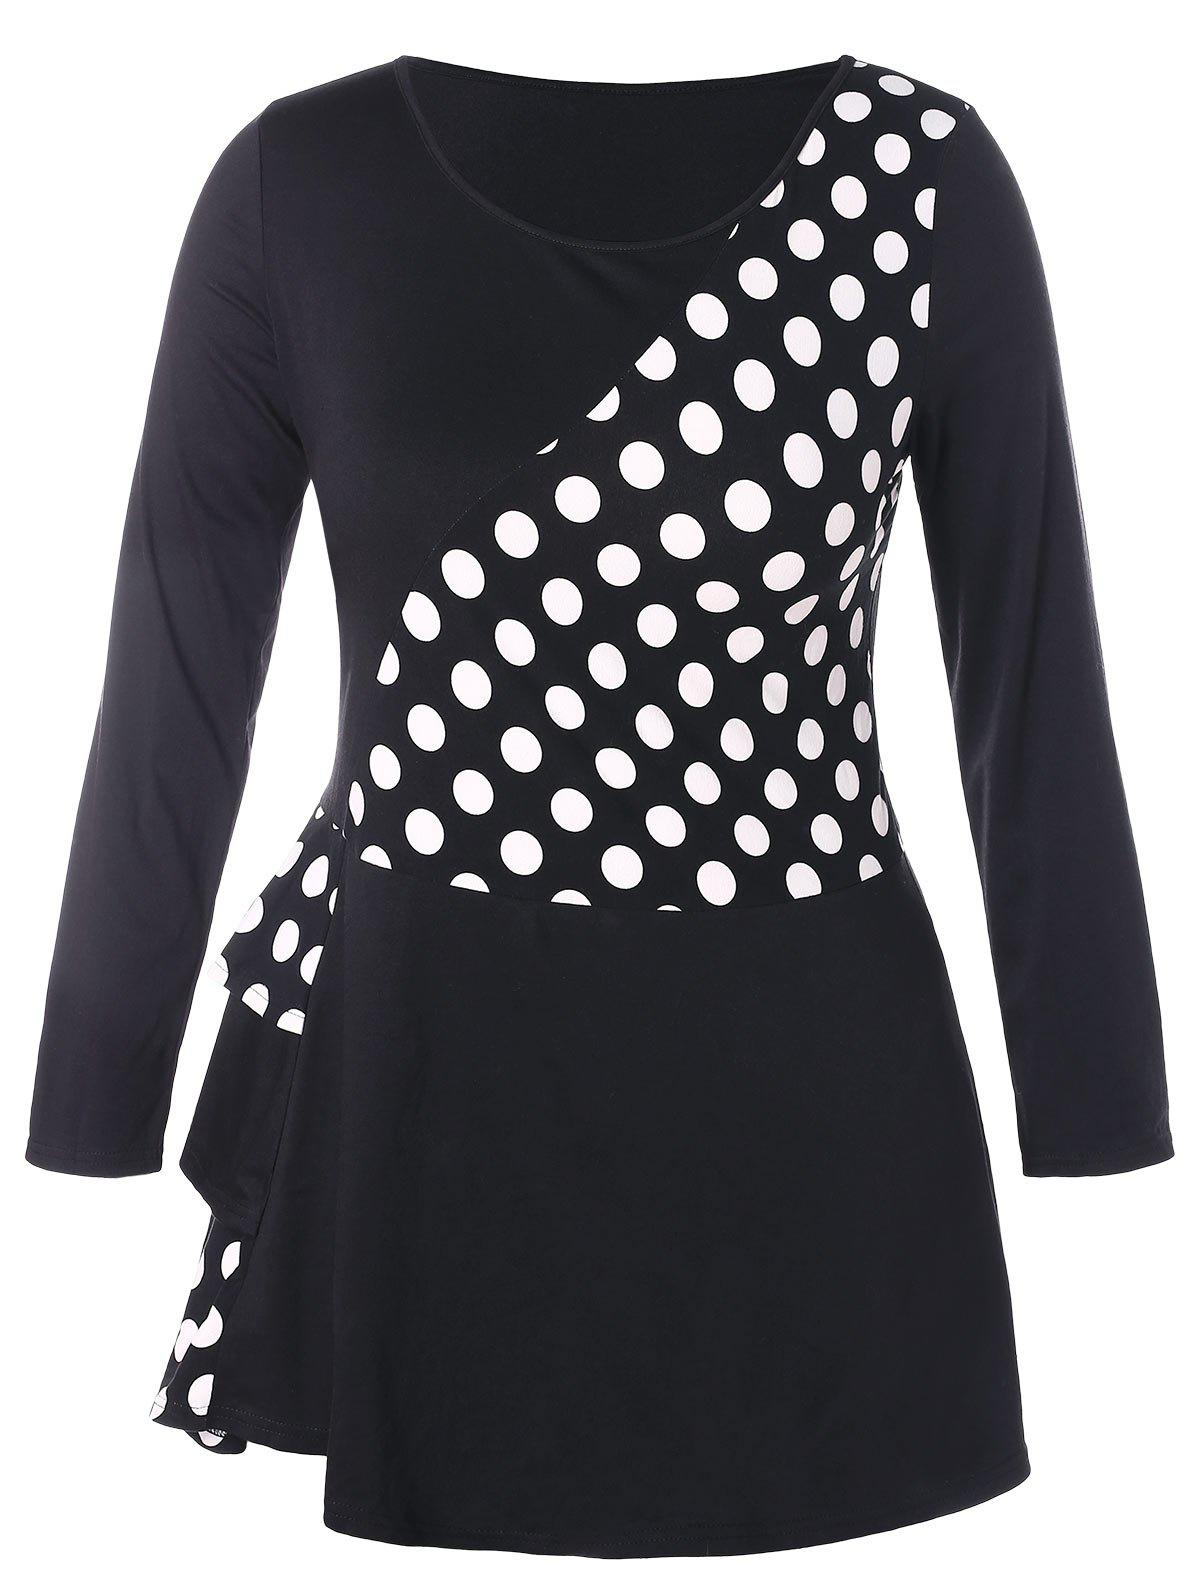 Plus Size Polka Dot Multilayer Flounce Splicing T-shirt - BLACK 1X